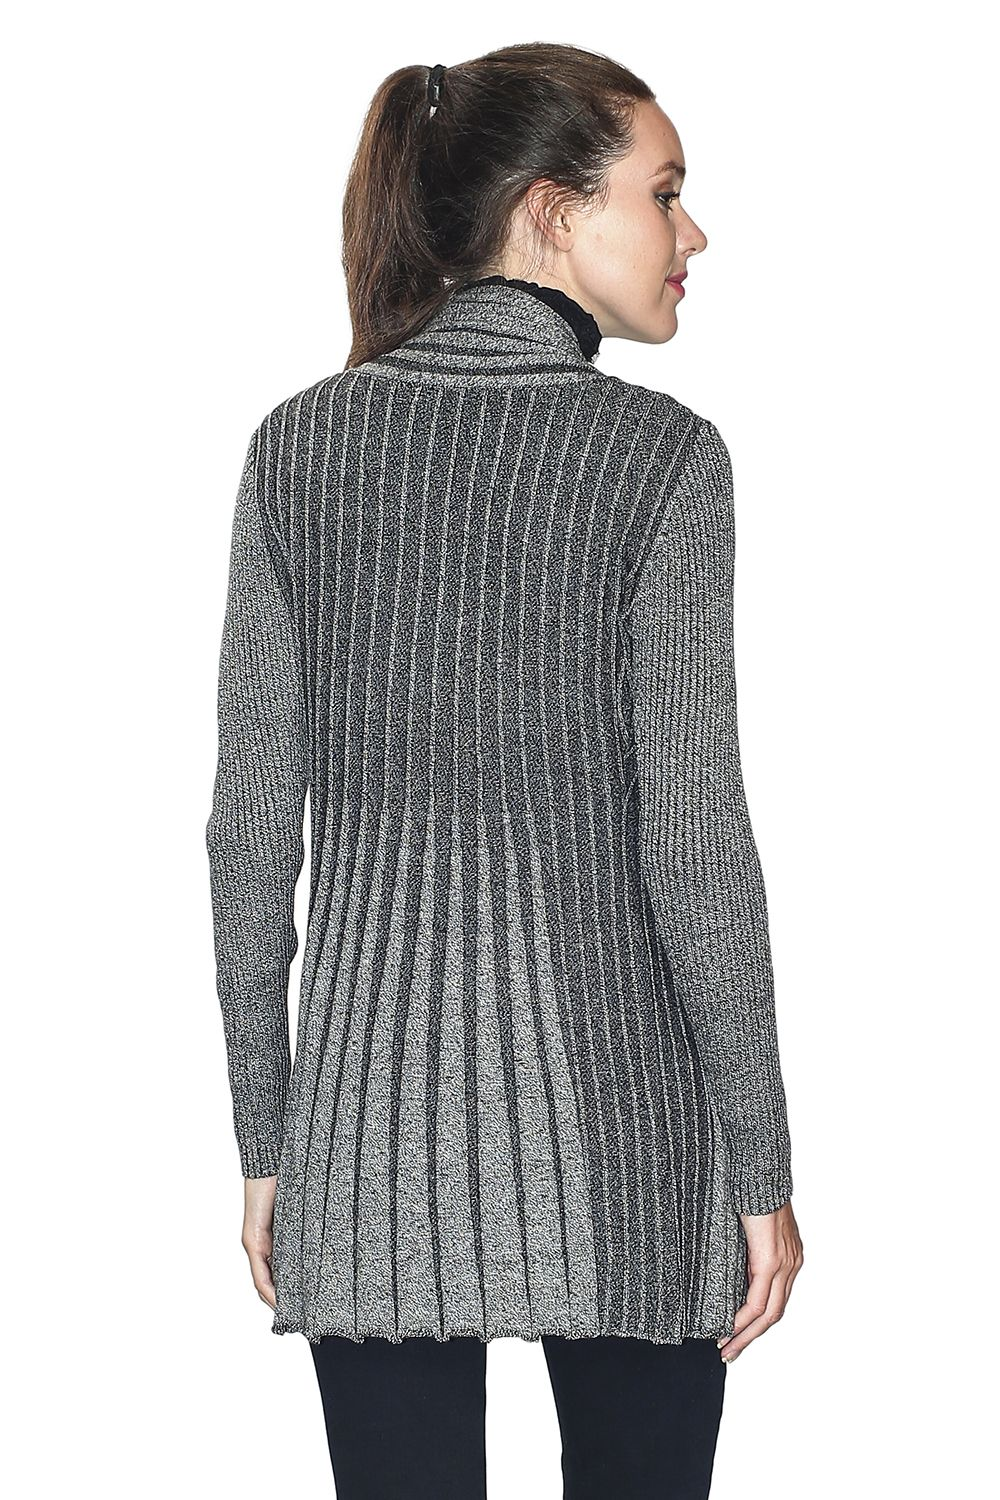 Assuili Long Sleeve Textured Mesh Open Cardigan (Classic Fit) in Black